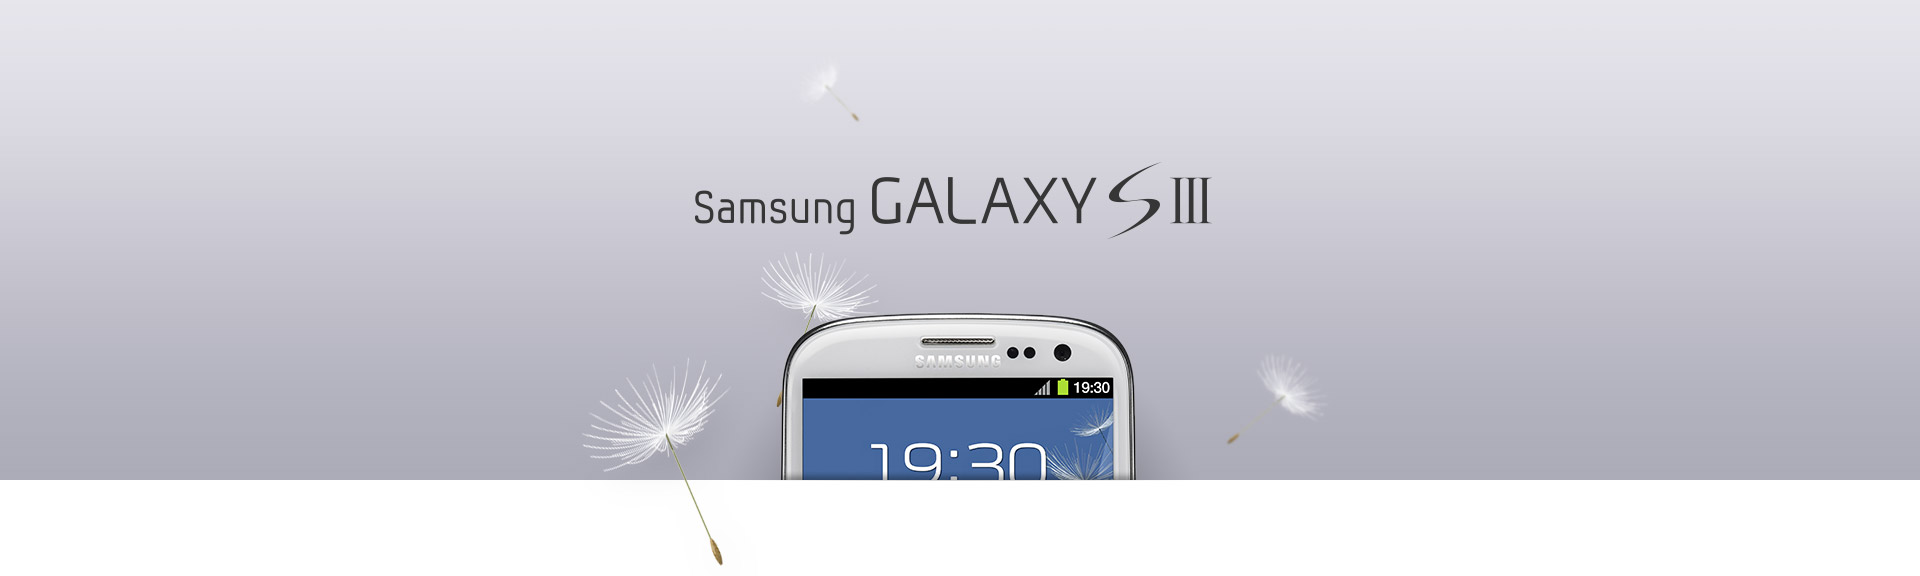 samsung_case_GS3_cover